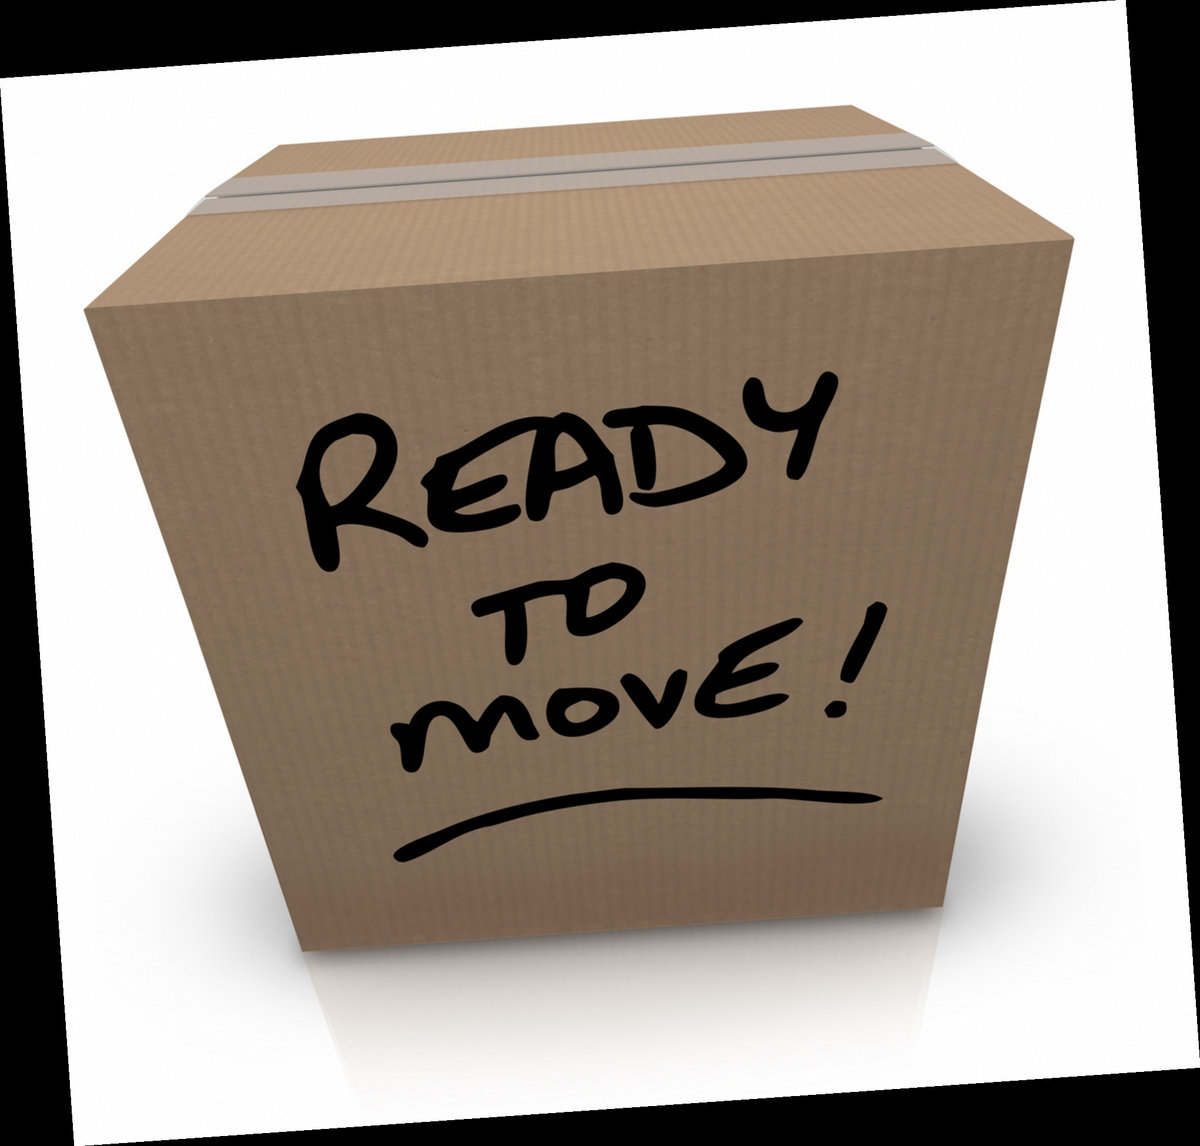 moving helper sign in tax forms 1(855)789-2734 | citylife campbell